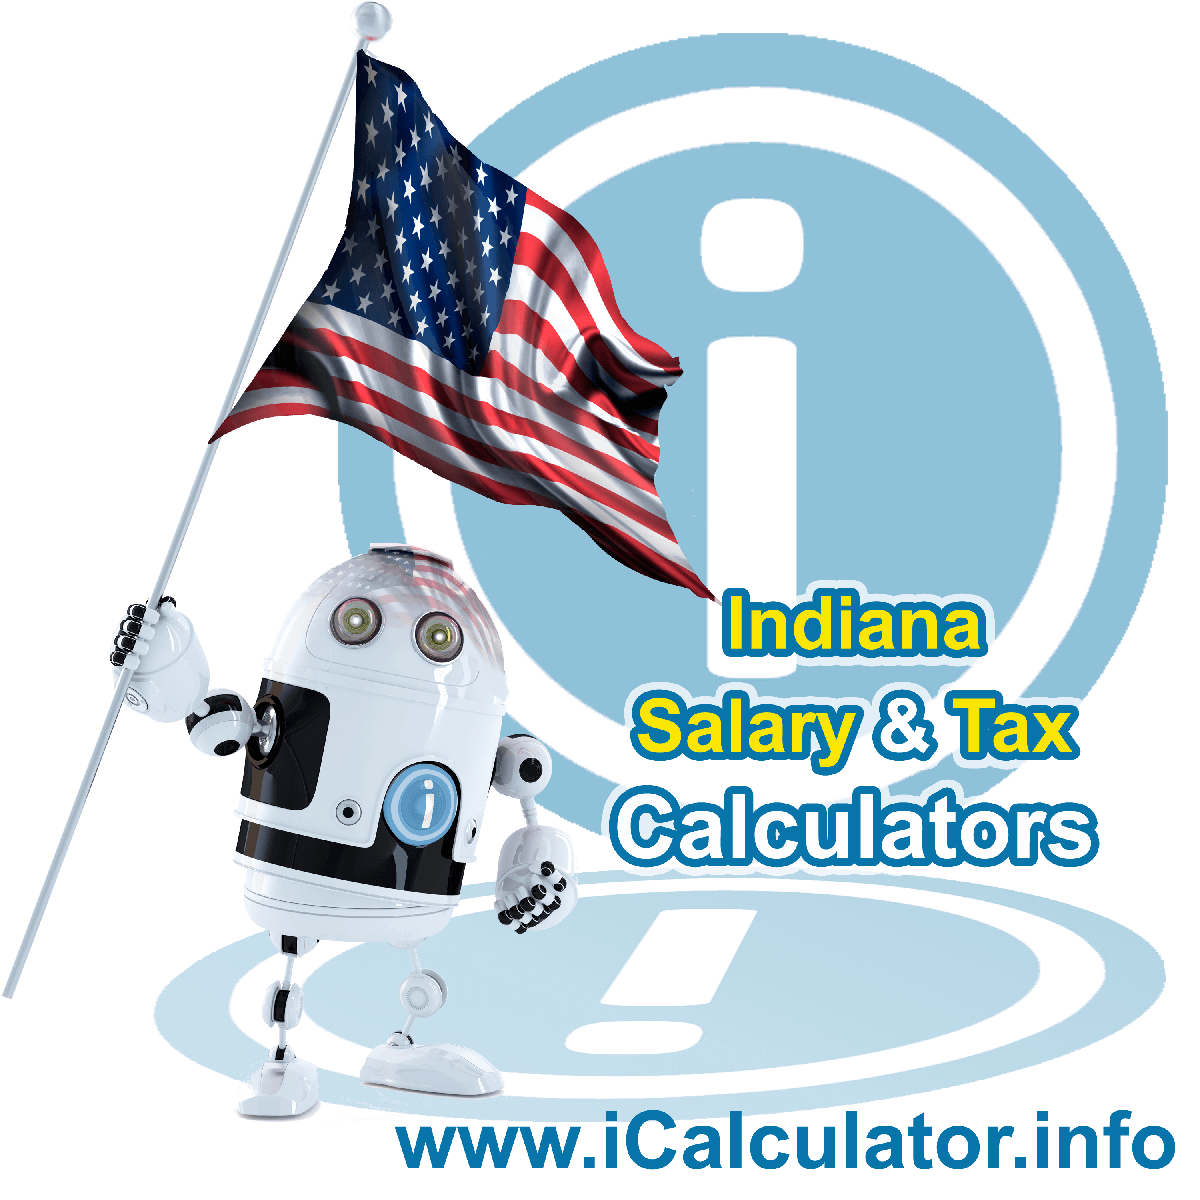 Indiana Salary Calculator 2020 | iCalculator | The Indiana Salary Calculator allows you to quickly calculate your salary after tax including Indiana State Tax, Federal State Tax, Medicare Deductions, Social Security, Capital Gains and other income tax and salary deductions complete with supporting Indiana state tax tables